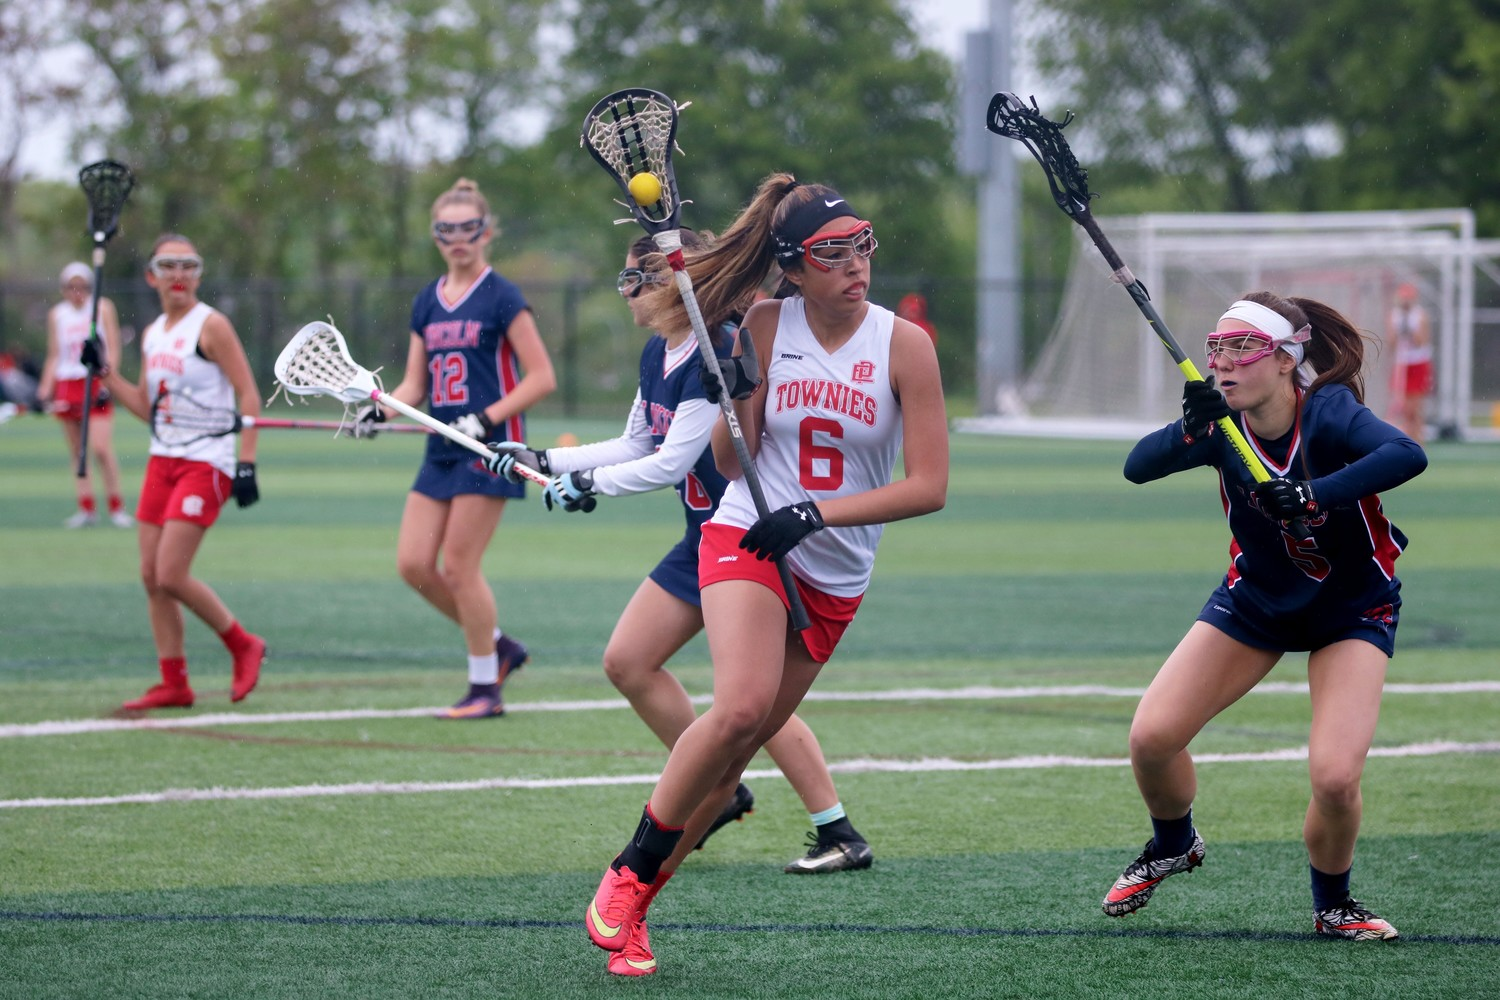 Sophia Monteiro in Townie lacrosse action